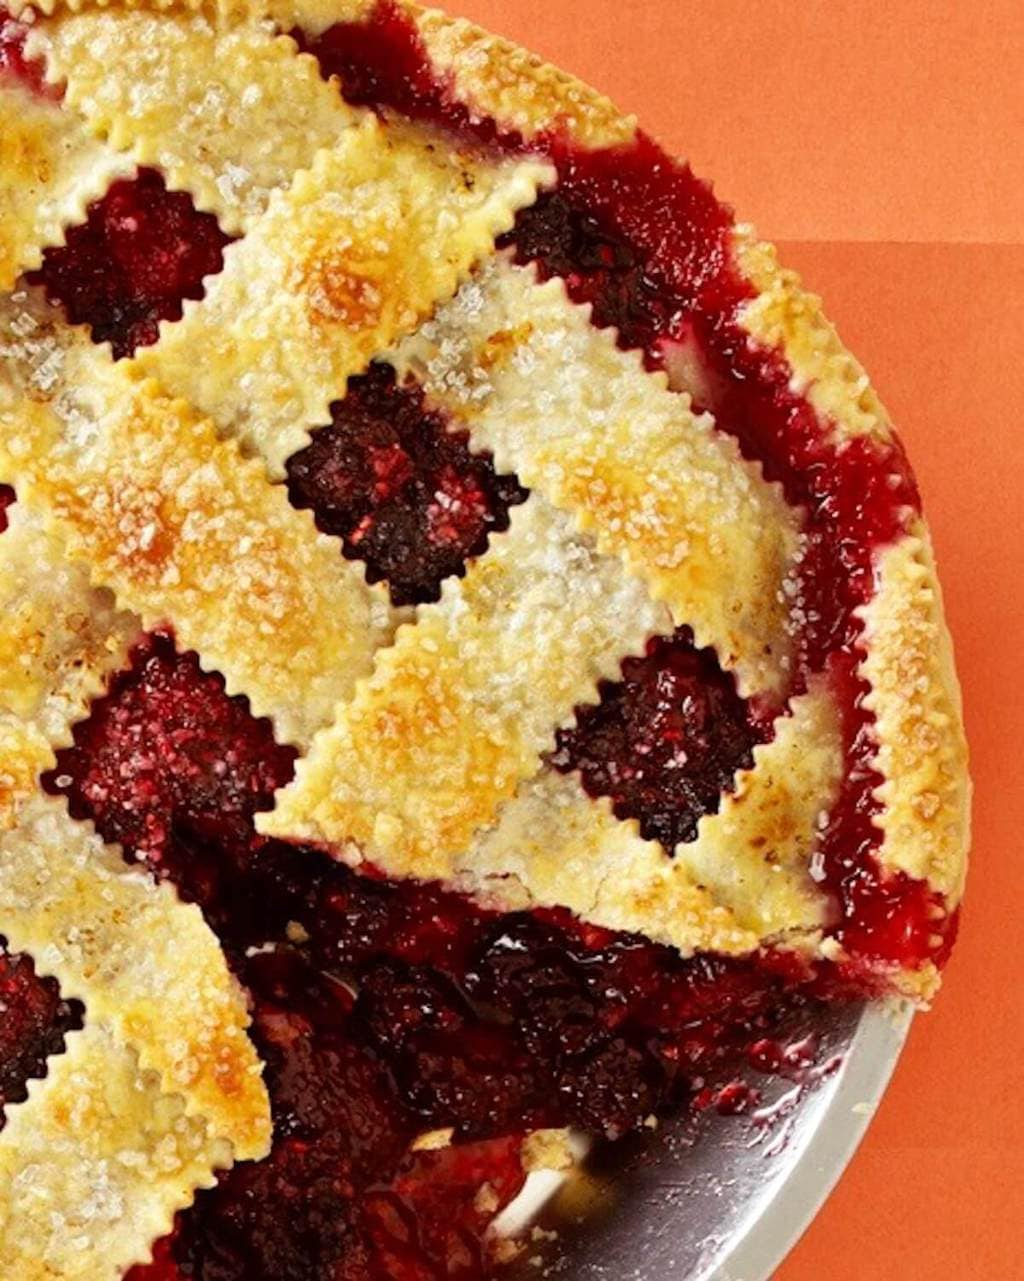 razzleberry pie with lattice top on orange paper